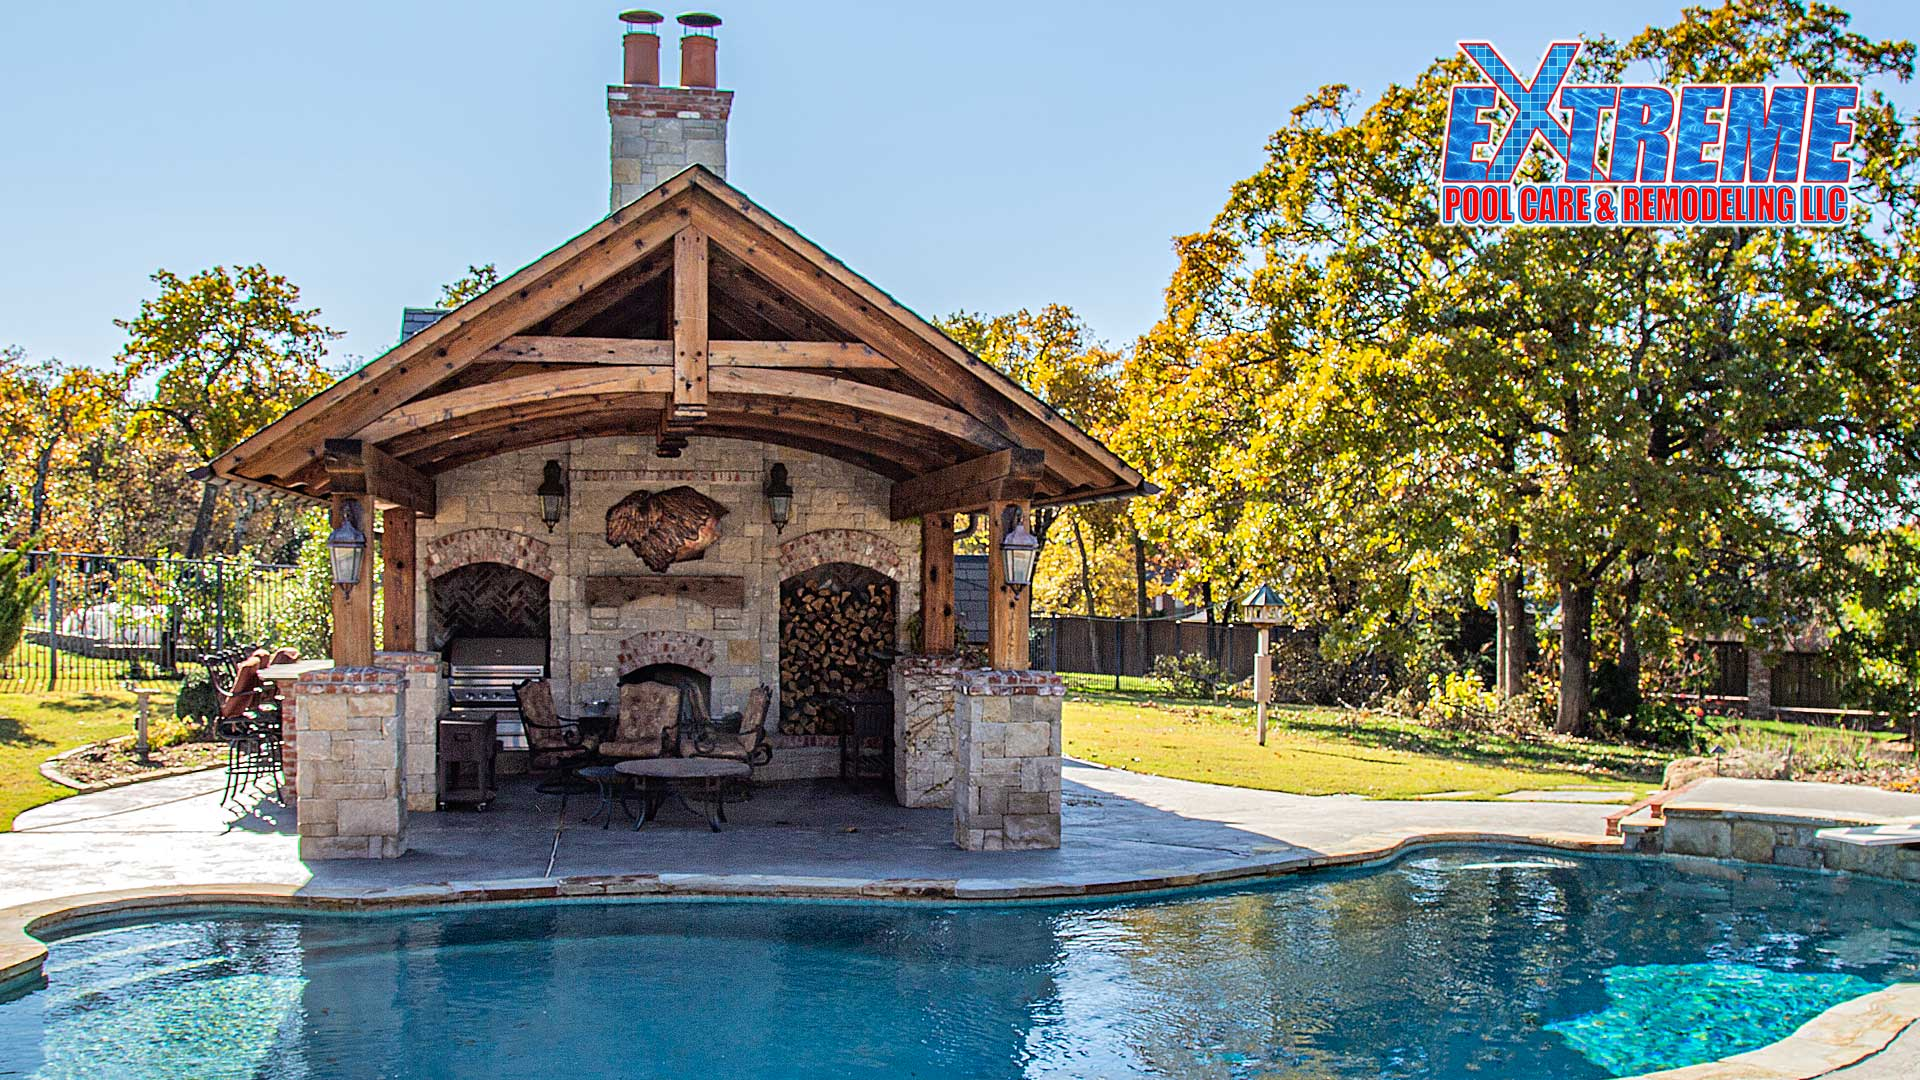 Custom Pool Houses by Extreme Pool Care LLC in Oklahoma City